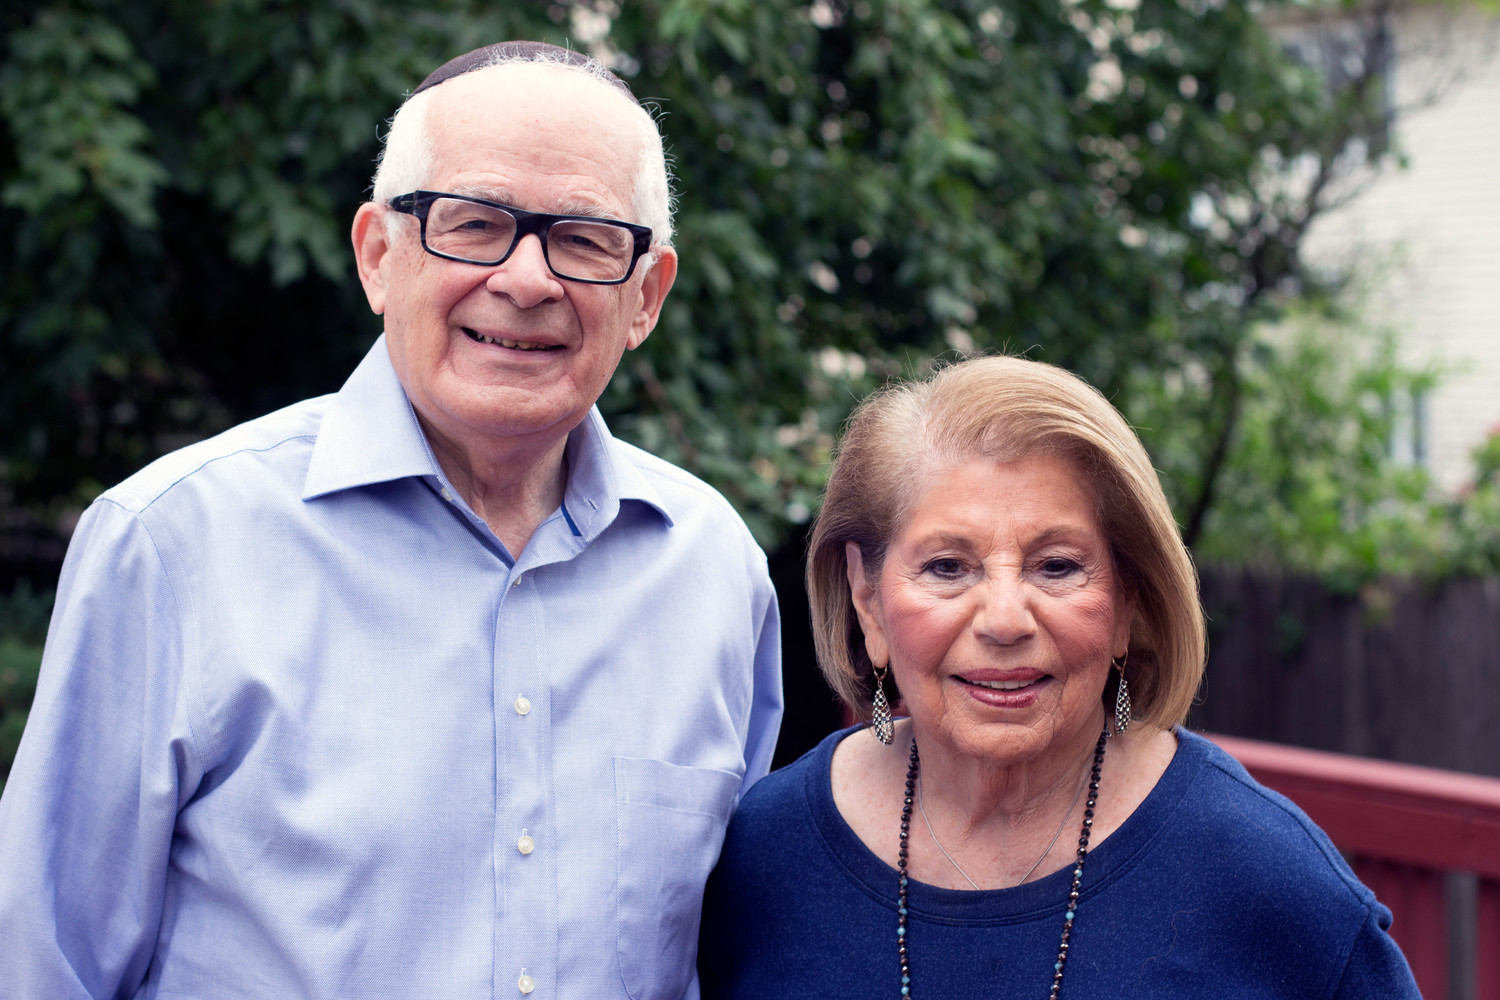 AMIT will recognize a half-dozen people for their support of the Jewish organization, including Woodmere residents Max and Audrey Wagner.